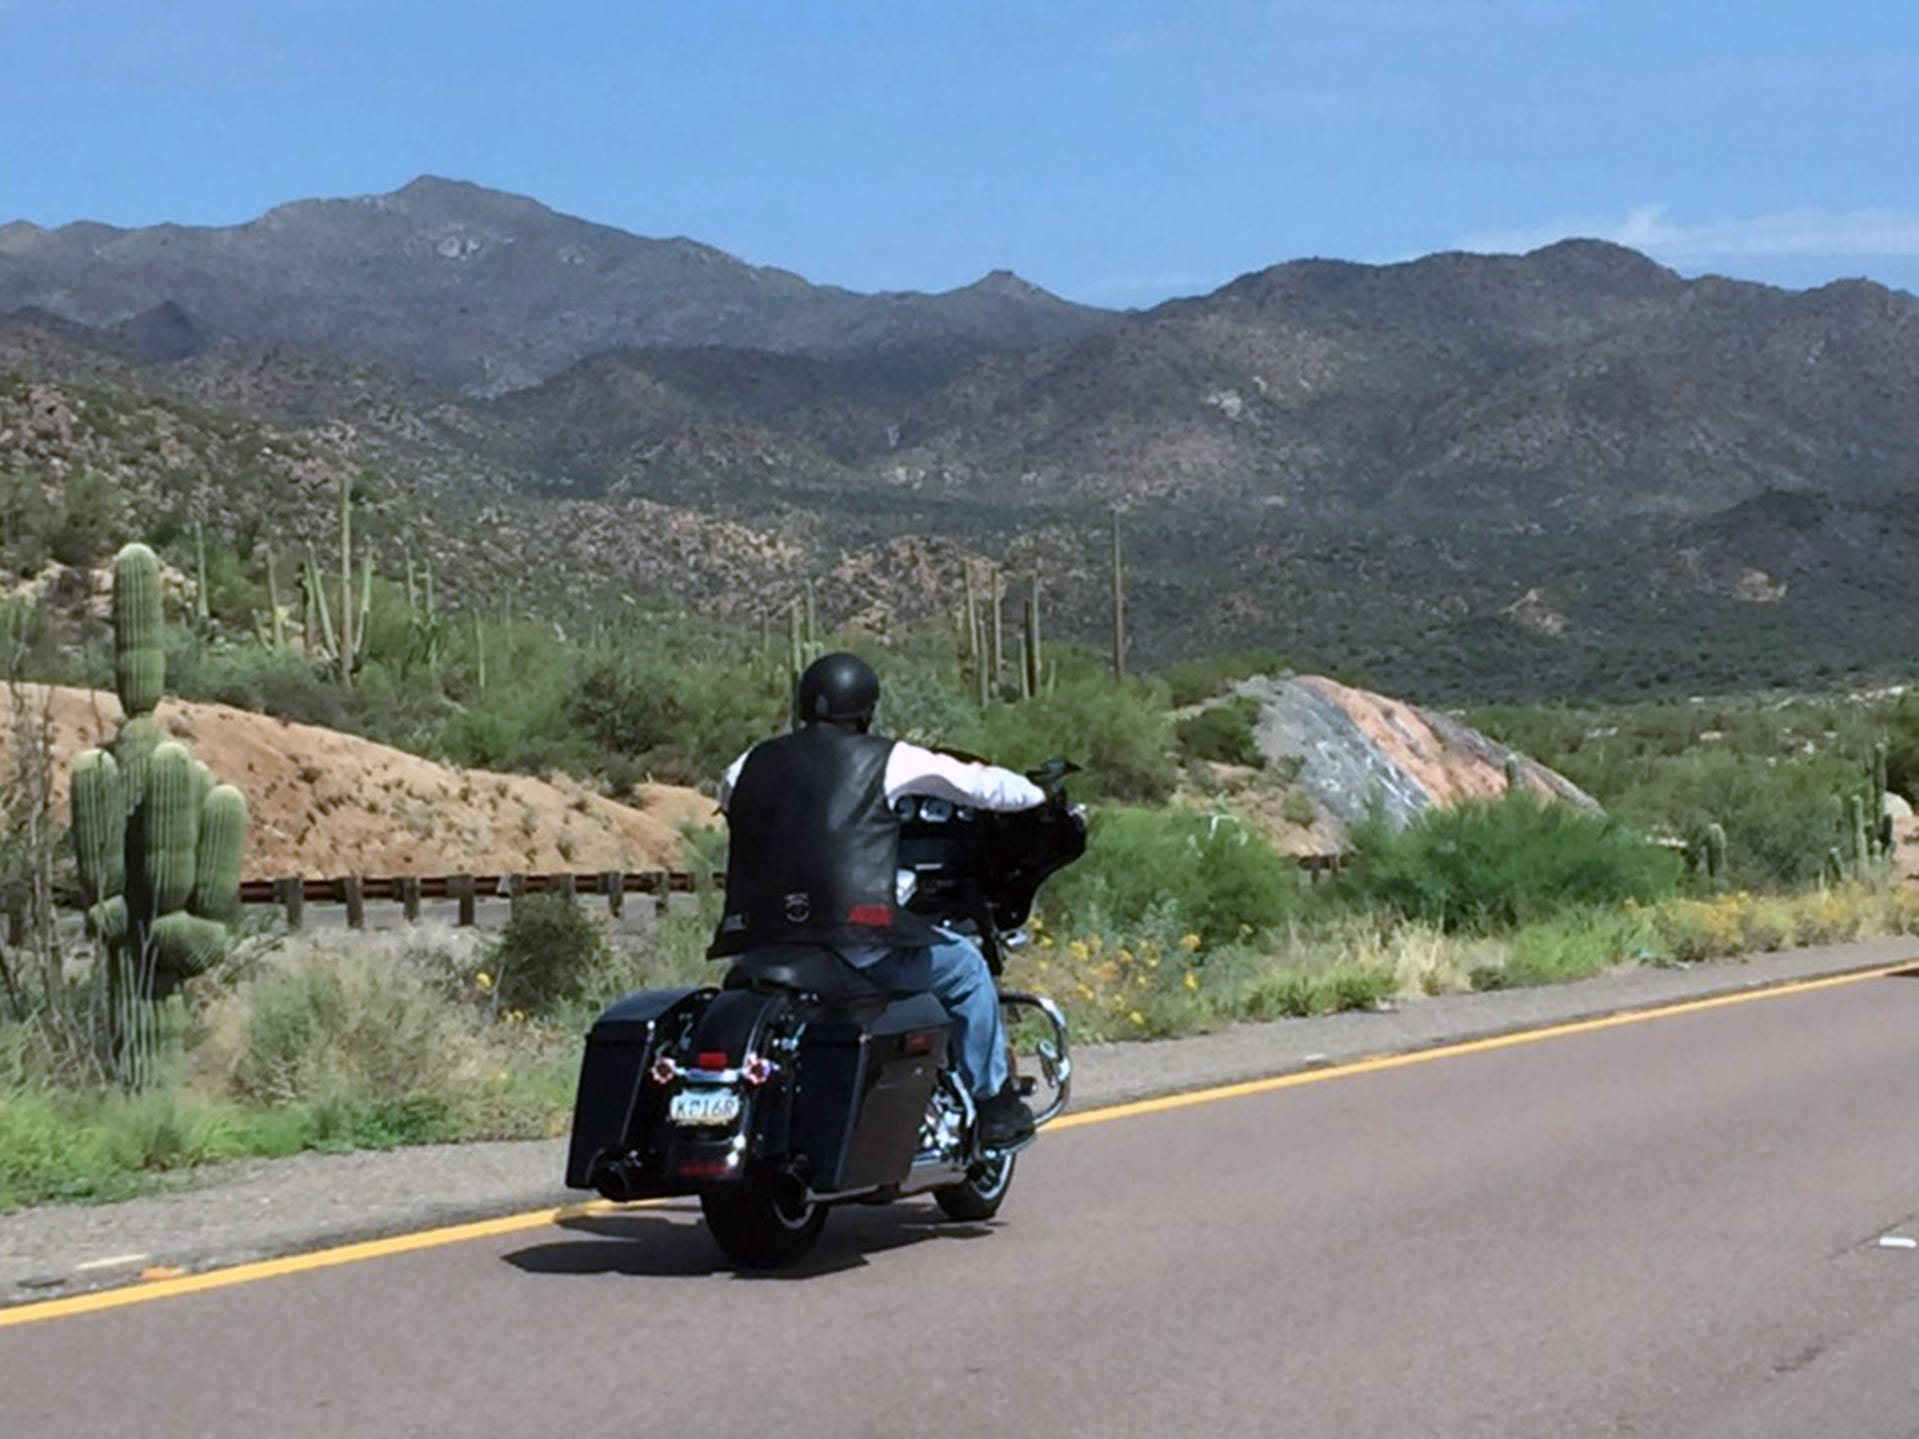 A rider passes through the Tonto National Forest after leaving Scottsdale on Day 2 of ride from San Diego to Milwaukee. About 30 bikes left Scottsdale at 9 a.m.